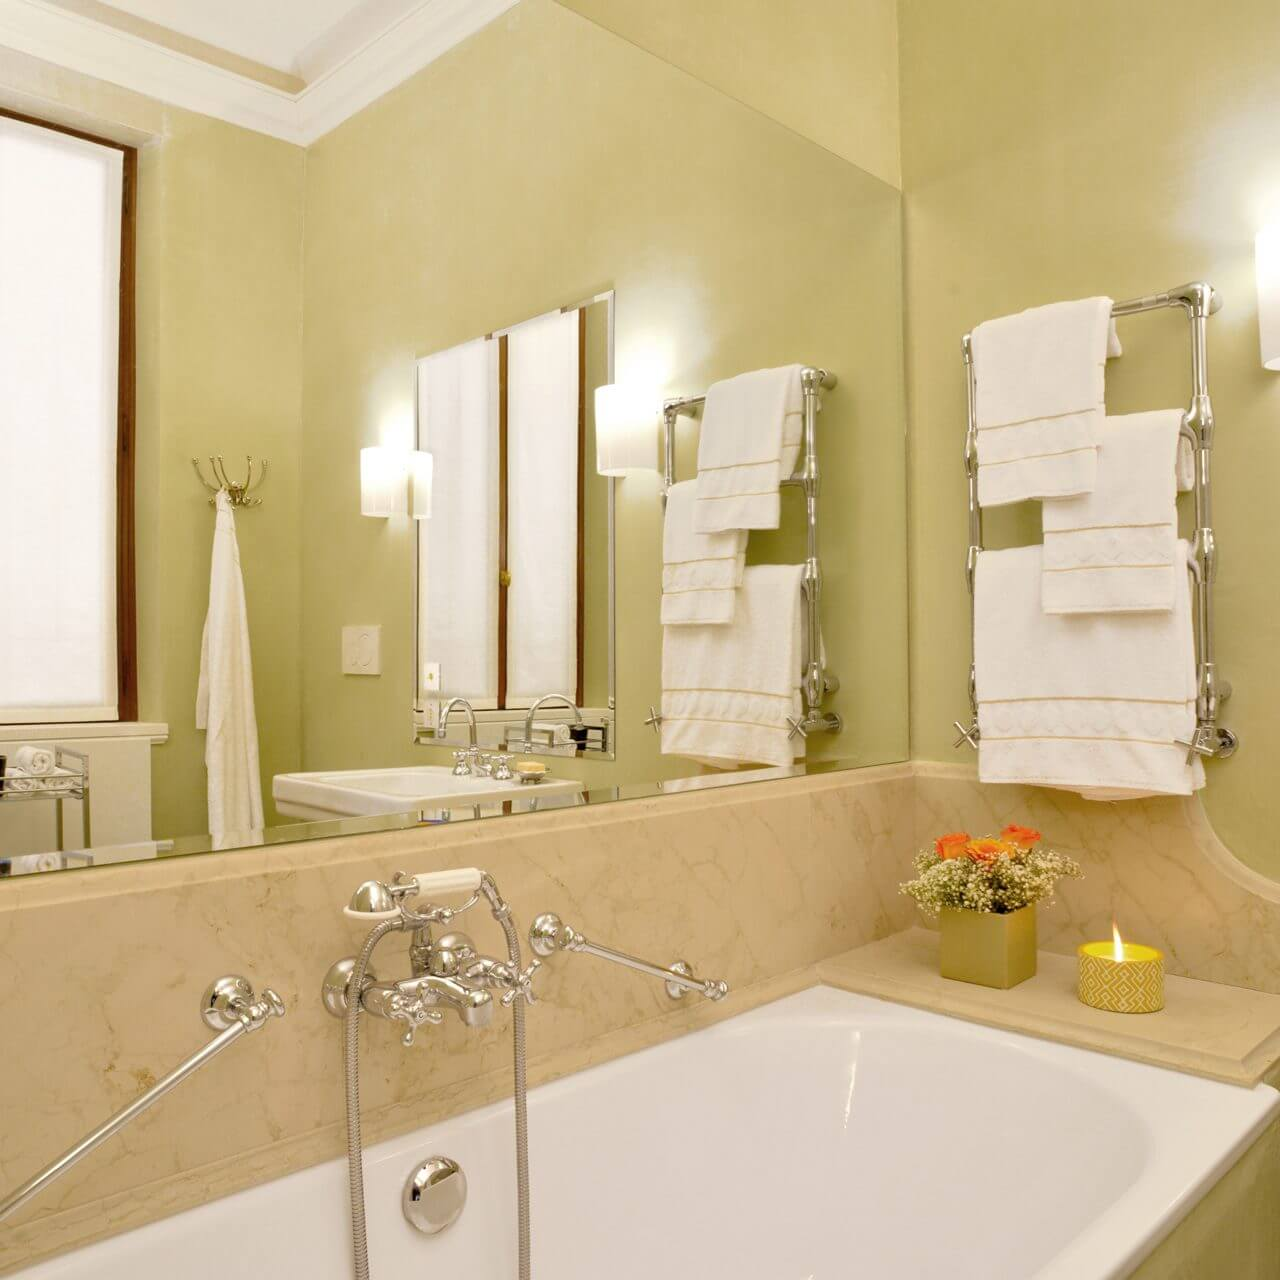 The ensuite master bathroom